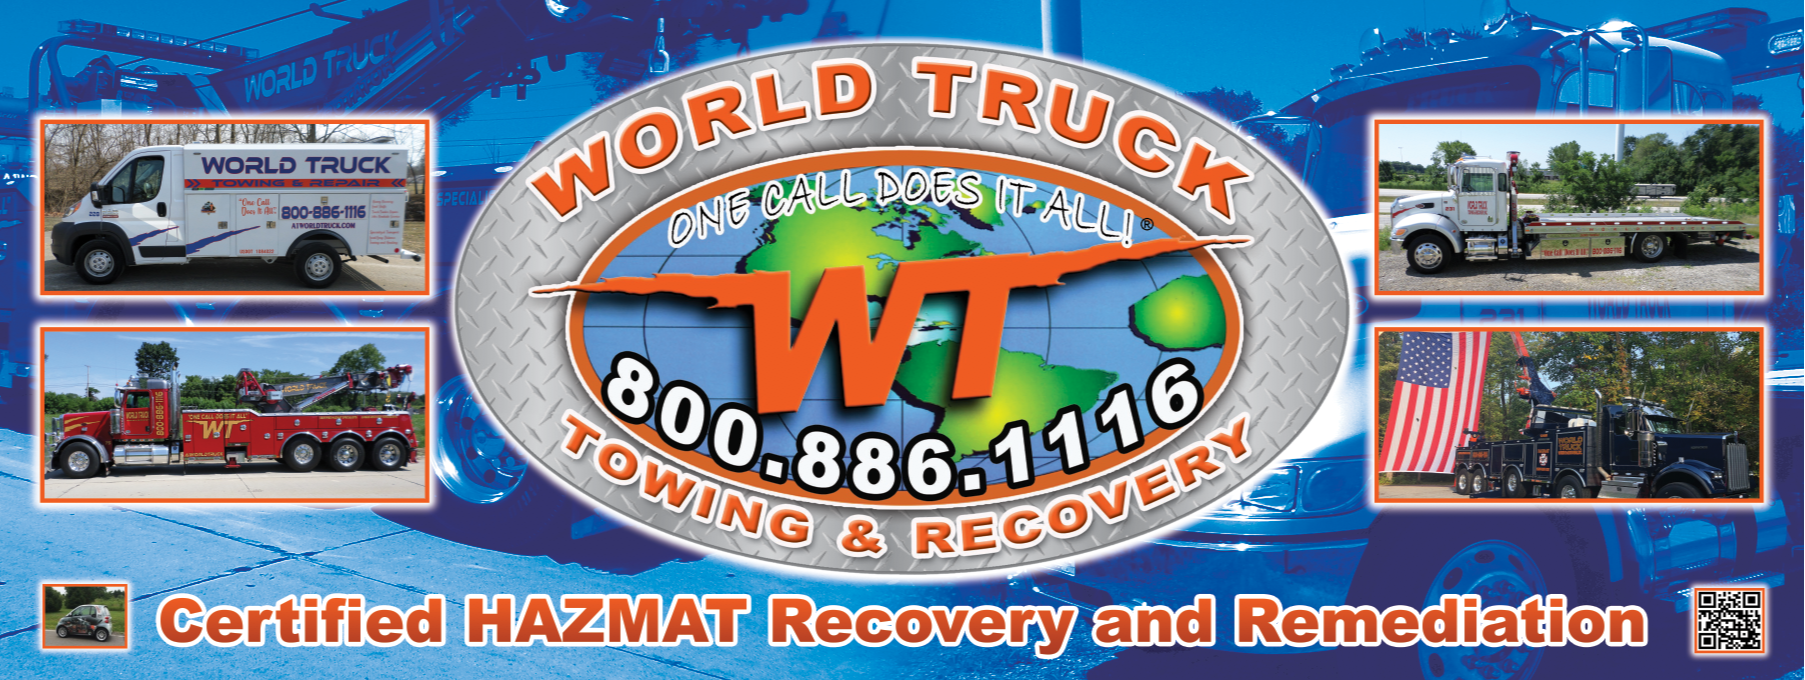 World Truck Towing & Recovery Inc. Towing.com Profile Banner